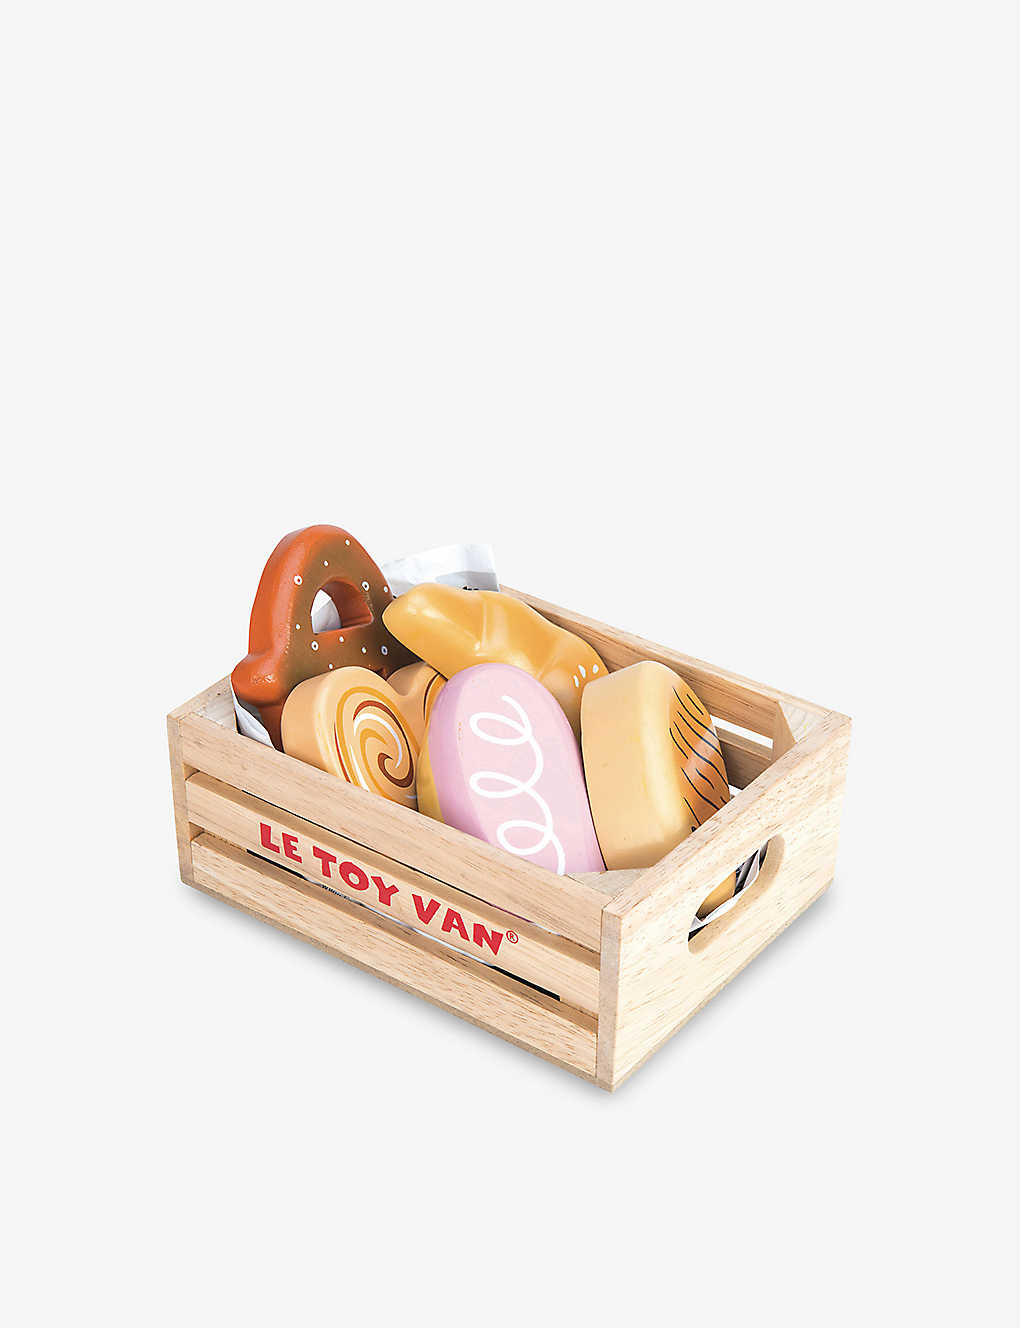 LE TOY VAN: Bakers Basket wooden toy set